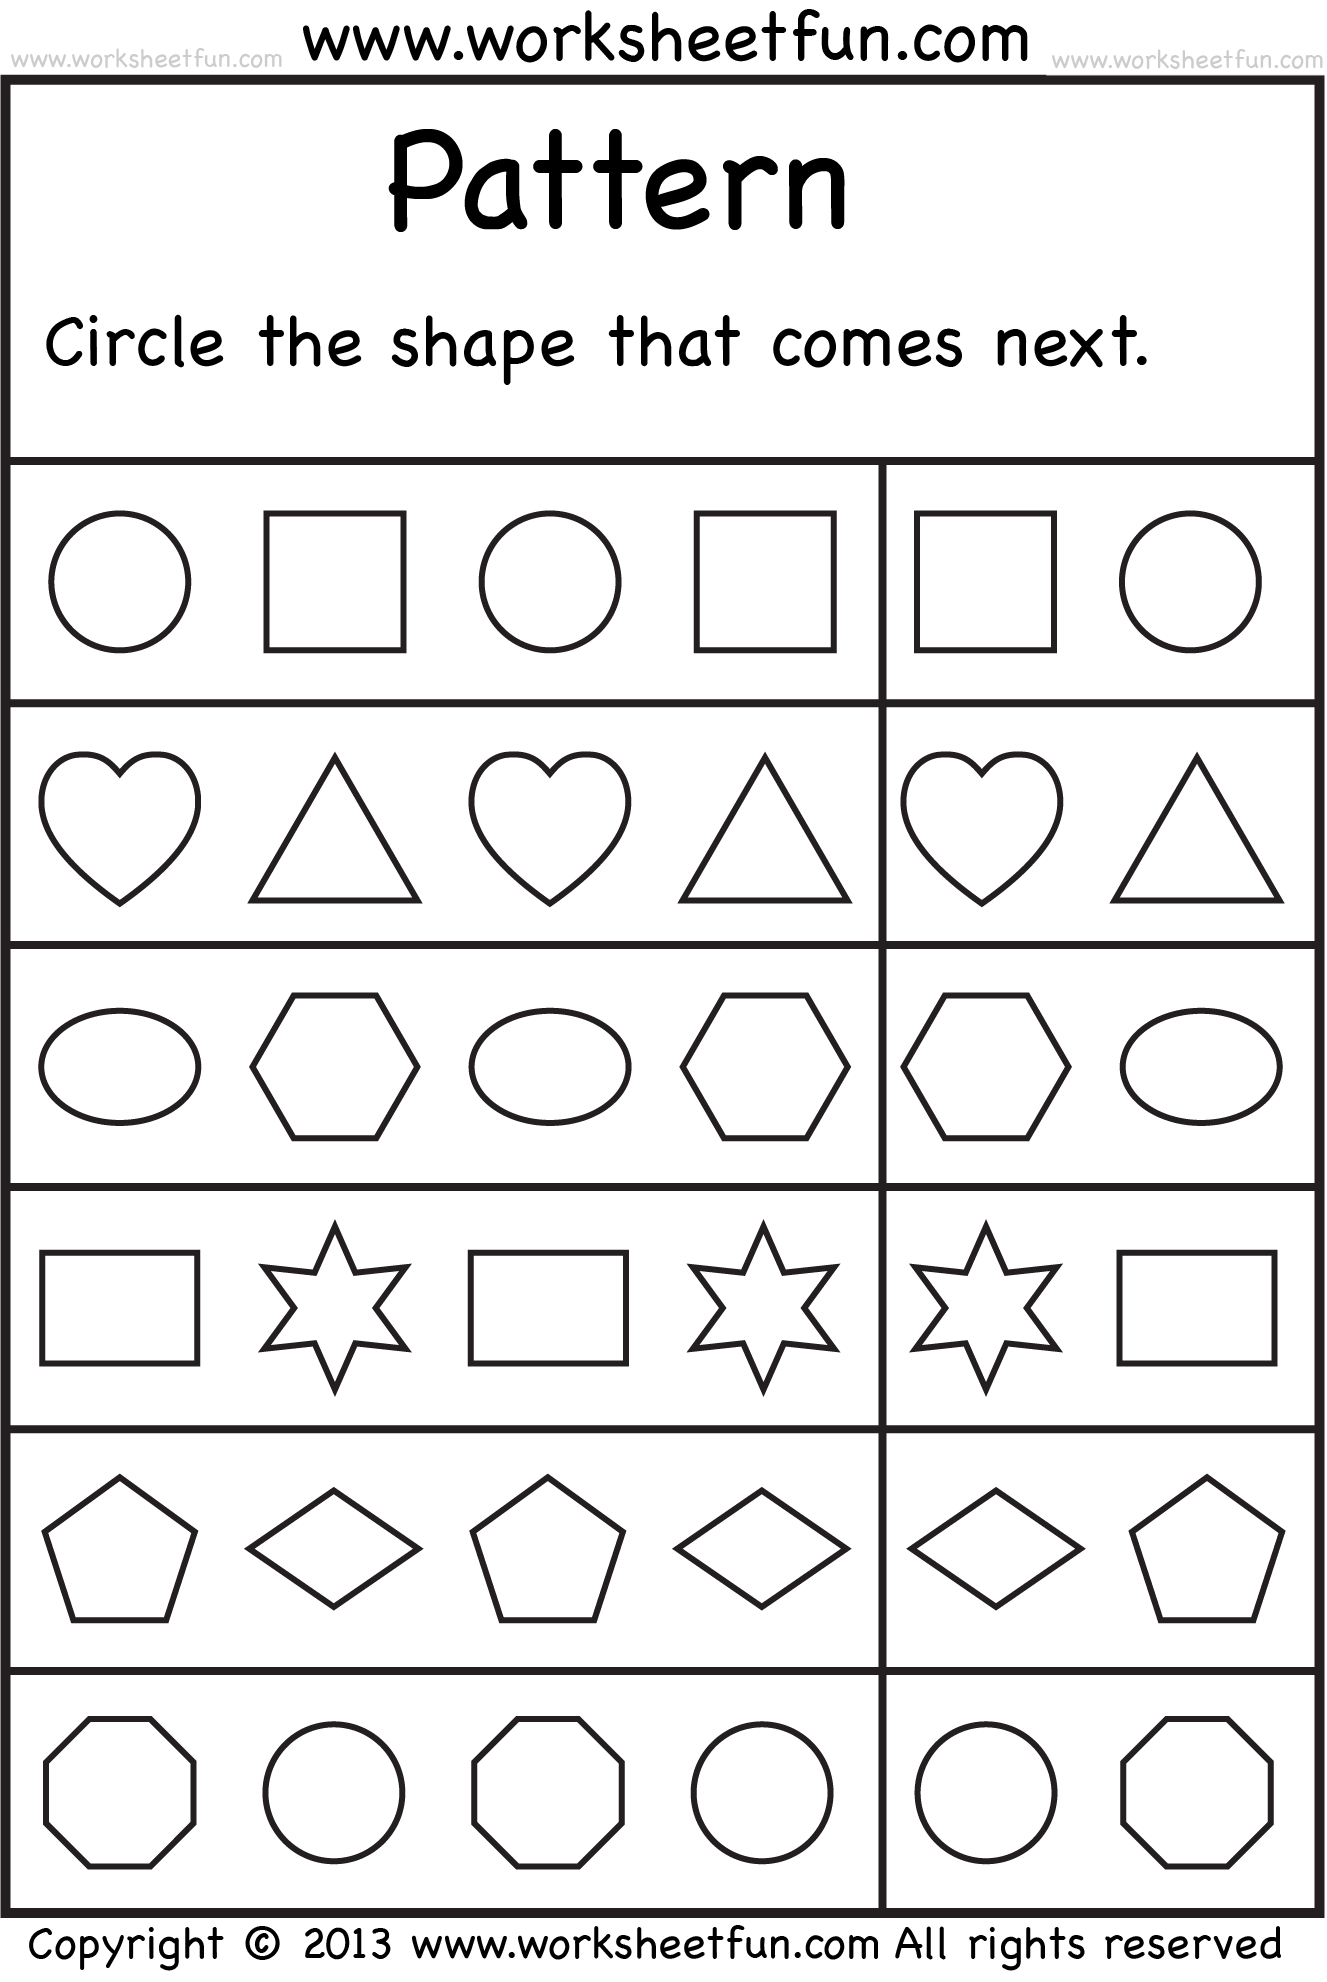 Weirdmailus  Wonderful  Images About School Worksheets On Pinterest  Number Words  With Extraordinary  Images About School Worksheets On Pinterest  Number Words Alphabet Worksheets And Free Printable Kindergarten Worksheets With Astounding North America Geography Worksheets Also Inequalities With Variables On Both Sides Worksheet In Addition Setting Boundaries In Relationships Worksheet And Parts Of An Experiment Worksheet As Well As Technical Drawing Worksheet Additionally Subject And Predicate Practice Worksheets From Pinterestcom With Weirdmailus  Extraordinary  Images About School Worksheets On Pinterest  Number Words  With Astounding  Images About School Worksheets On Pinterest  Number Words Alphabet Worksheets And Free Printable Kindergarten Worksheets And Wonderful North America Geography Worksheets Also Inequalities With Variables On Both Sides Worksheet In Addition Setting Boundaries In Relationships Worksheet From Pinterestcom